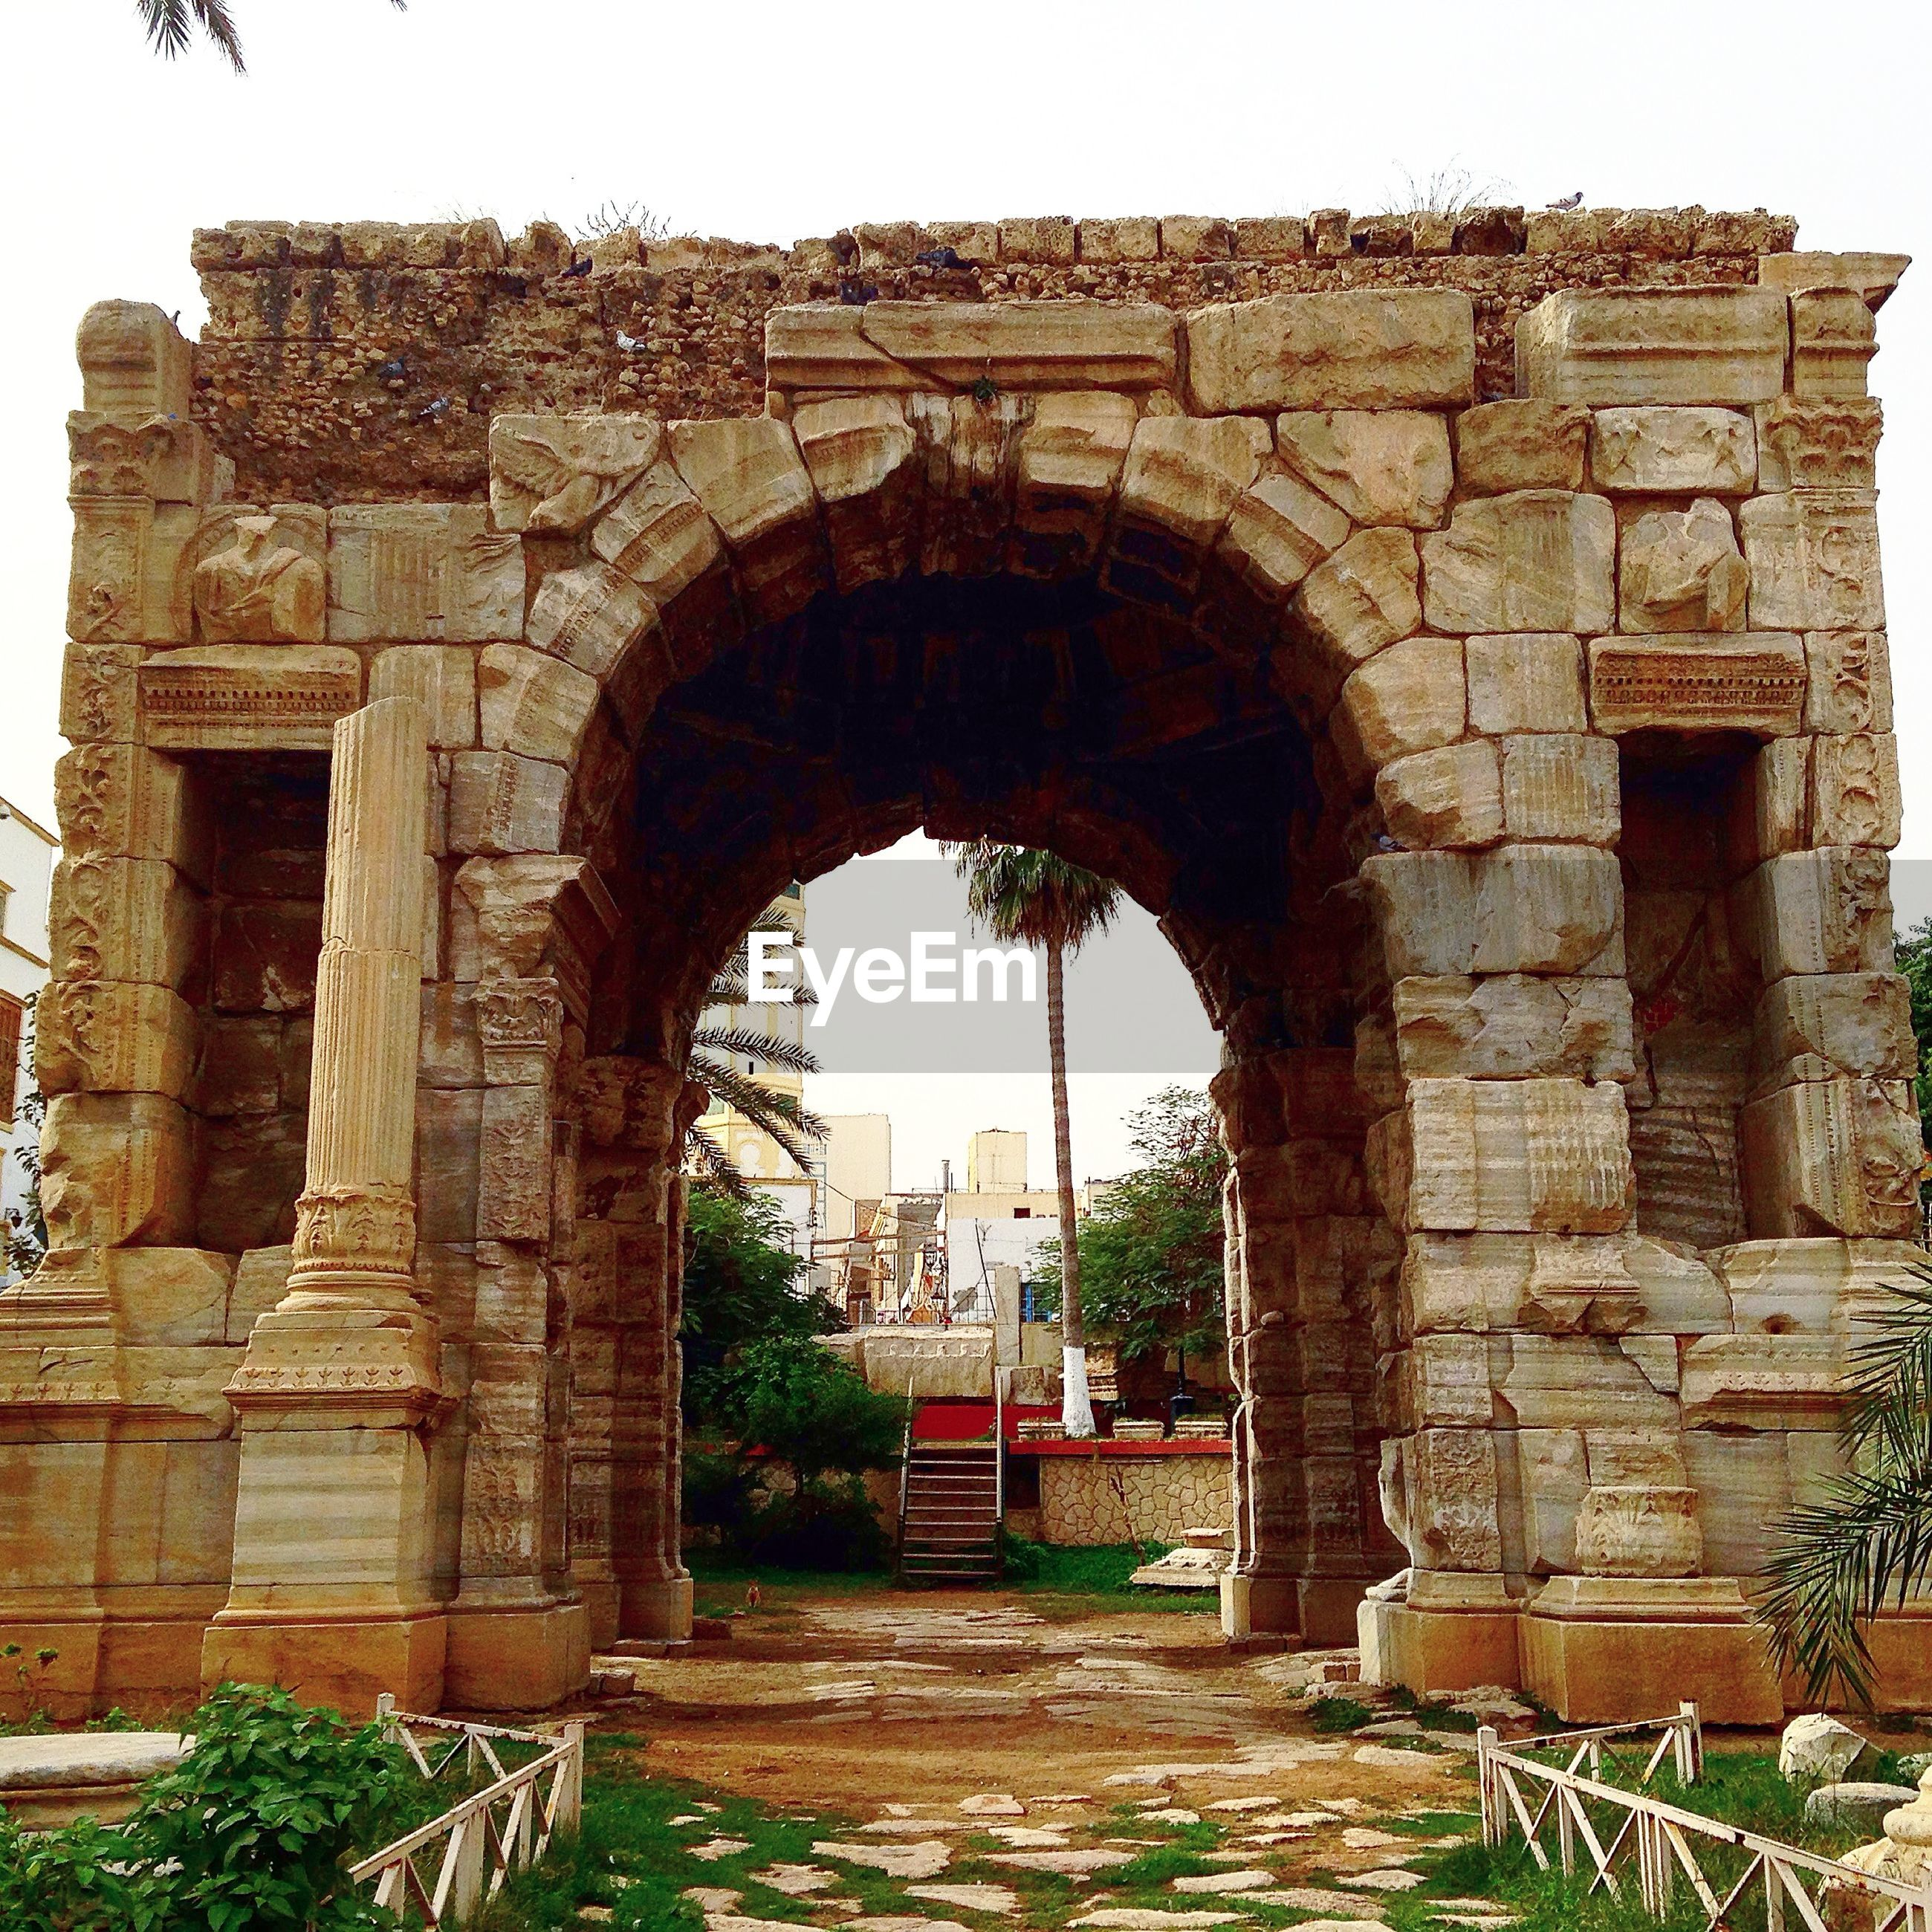 architecture, built structure, arch, building exterior, history, old, archway, old ruin, the past, ancient, stone wall, historic, arched, entrance, ancient civilization, sky, day, clear sky, abandoned, famous place